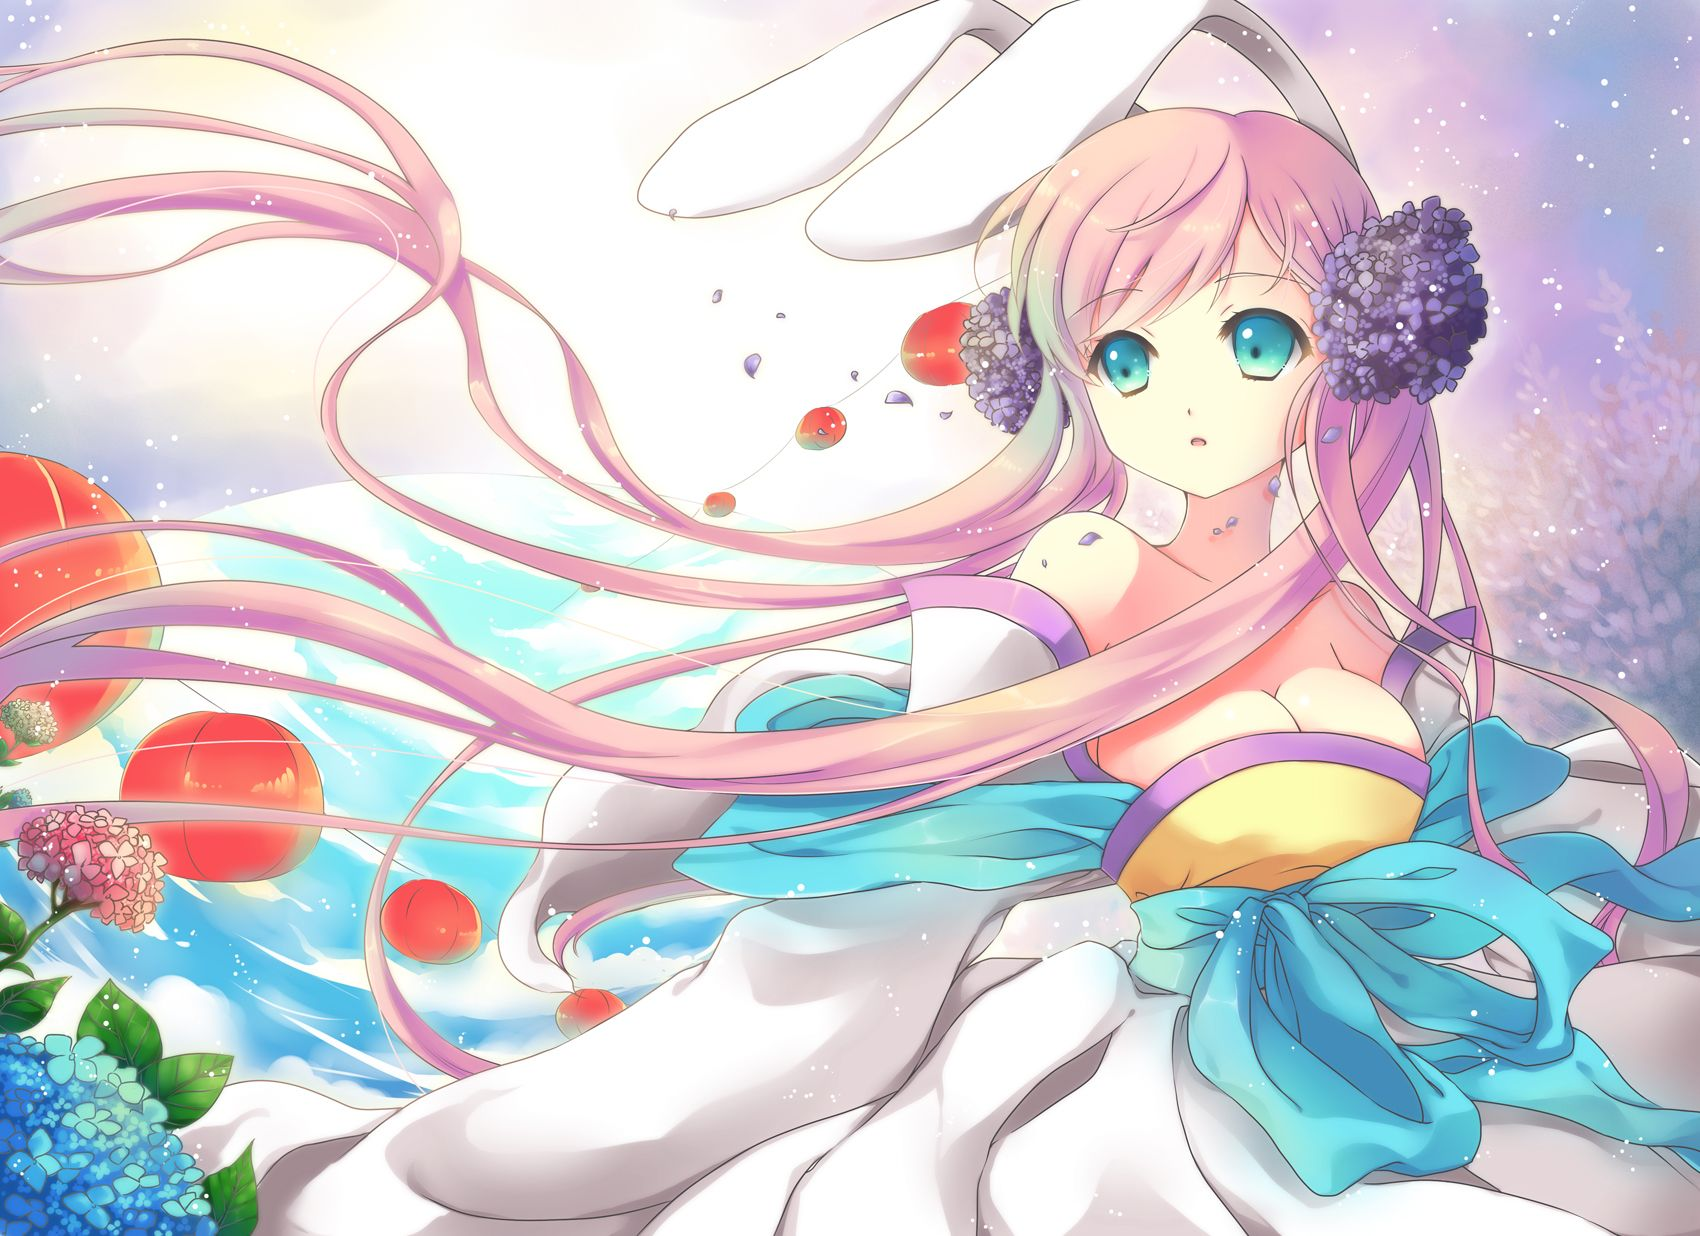 Anime girl with pink hair blue eyes kimono purple red blue flowers lanterns and bunny ears